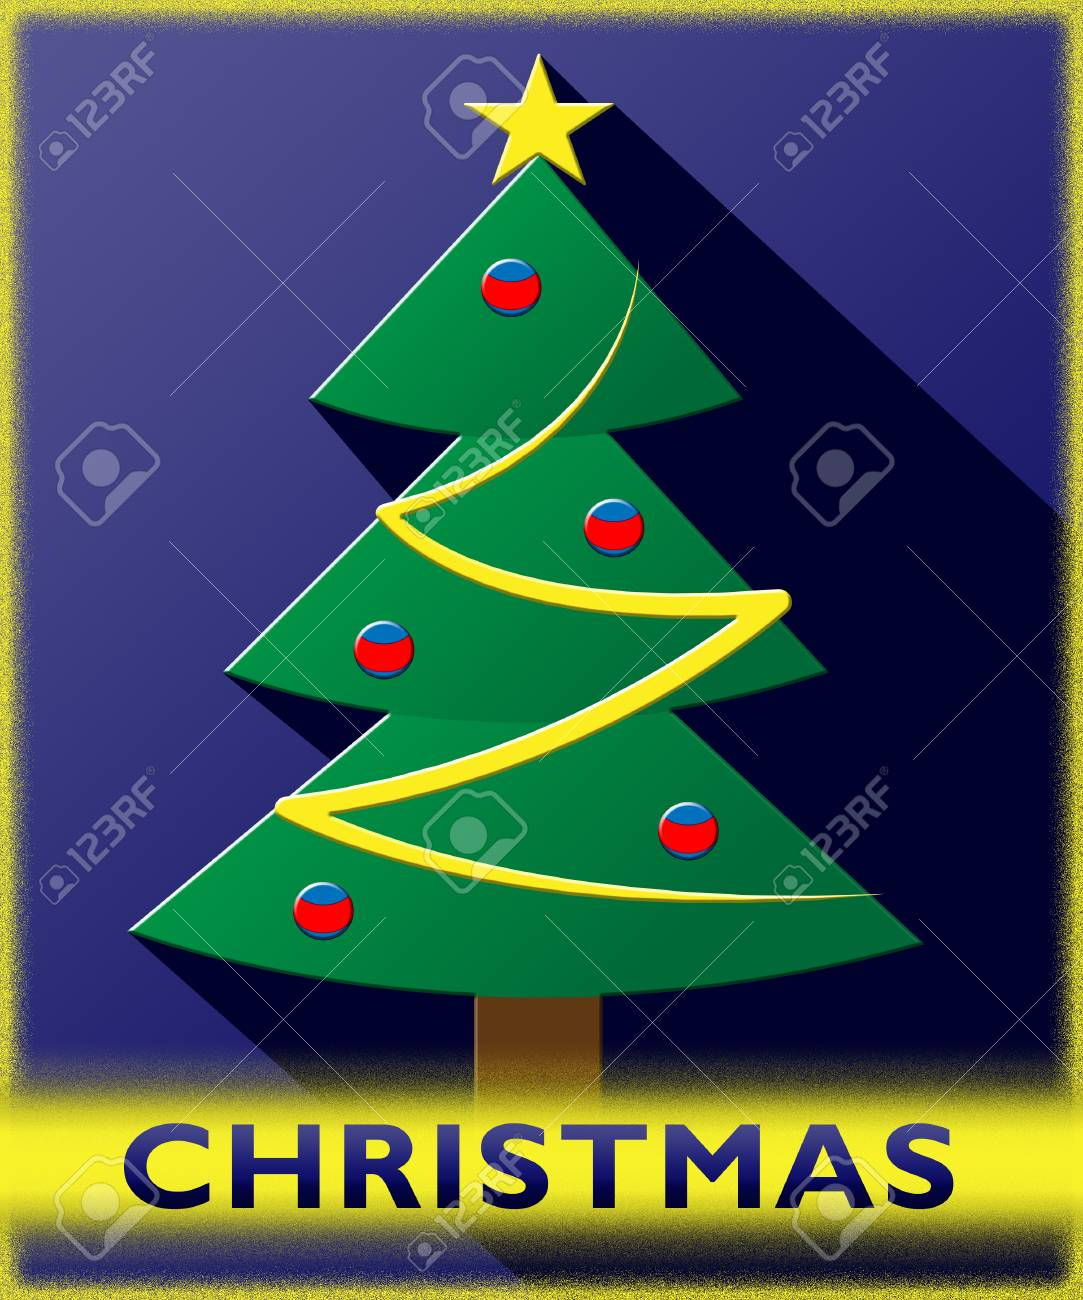 Christmas Tree Meaning.Stock Illustration